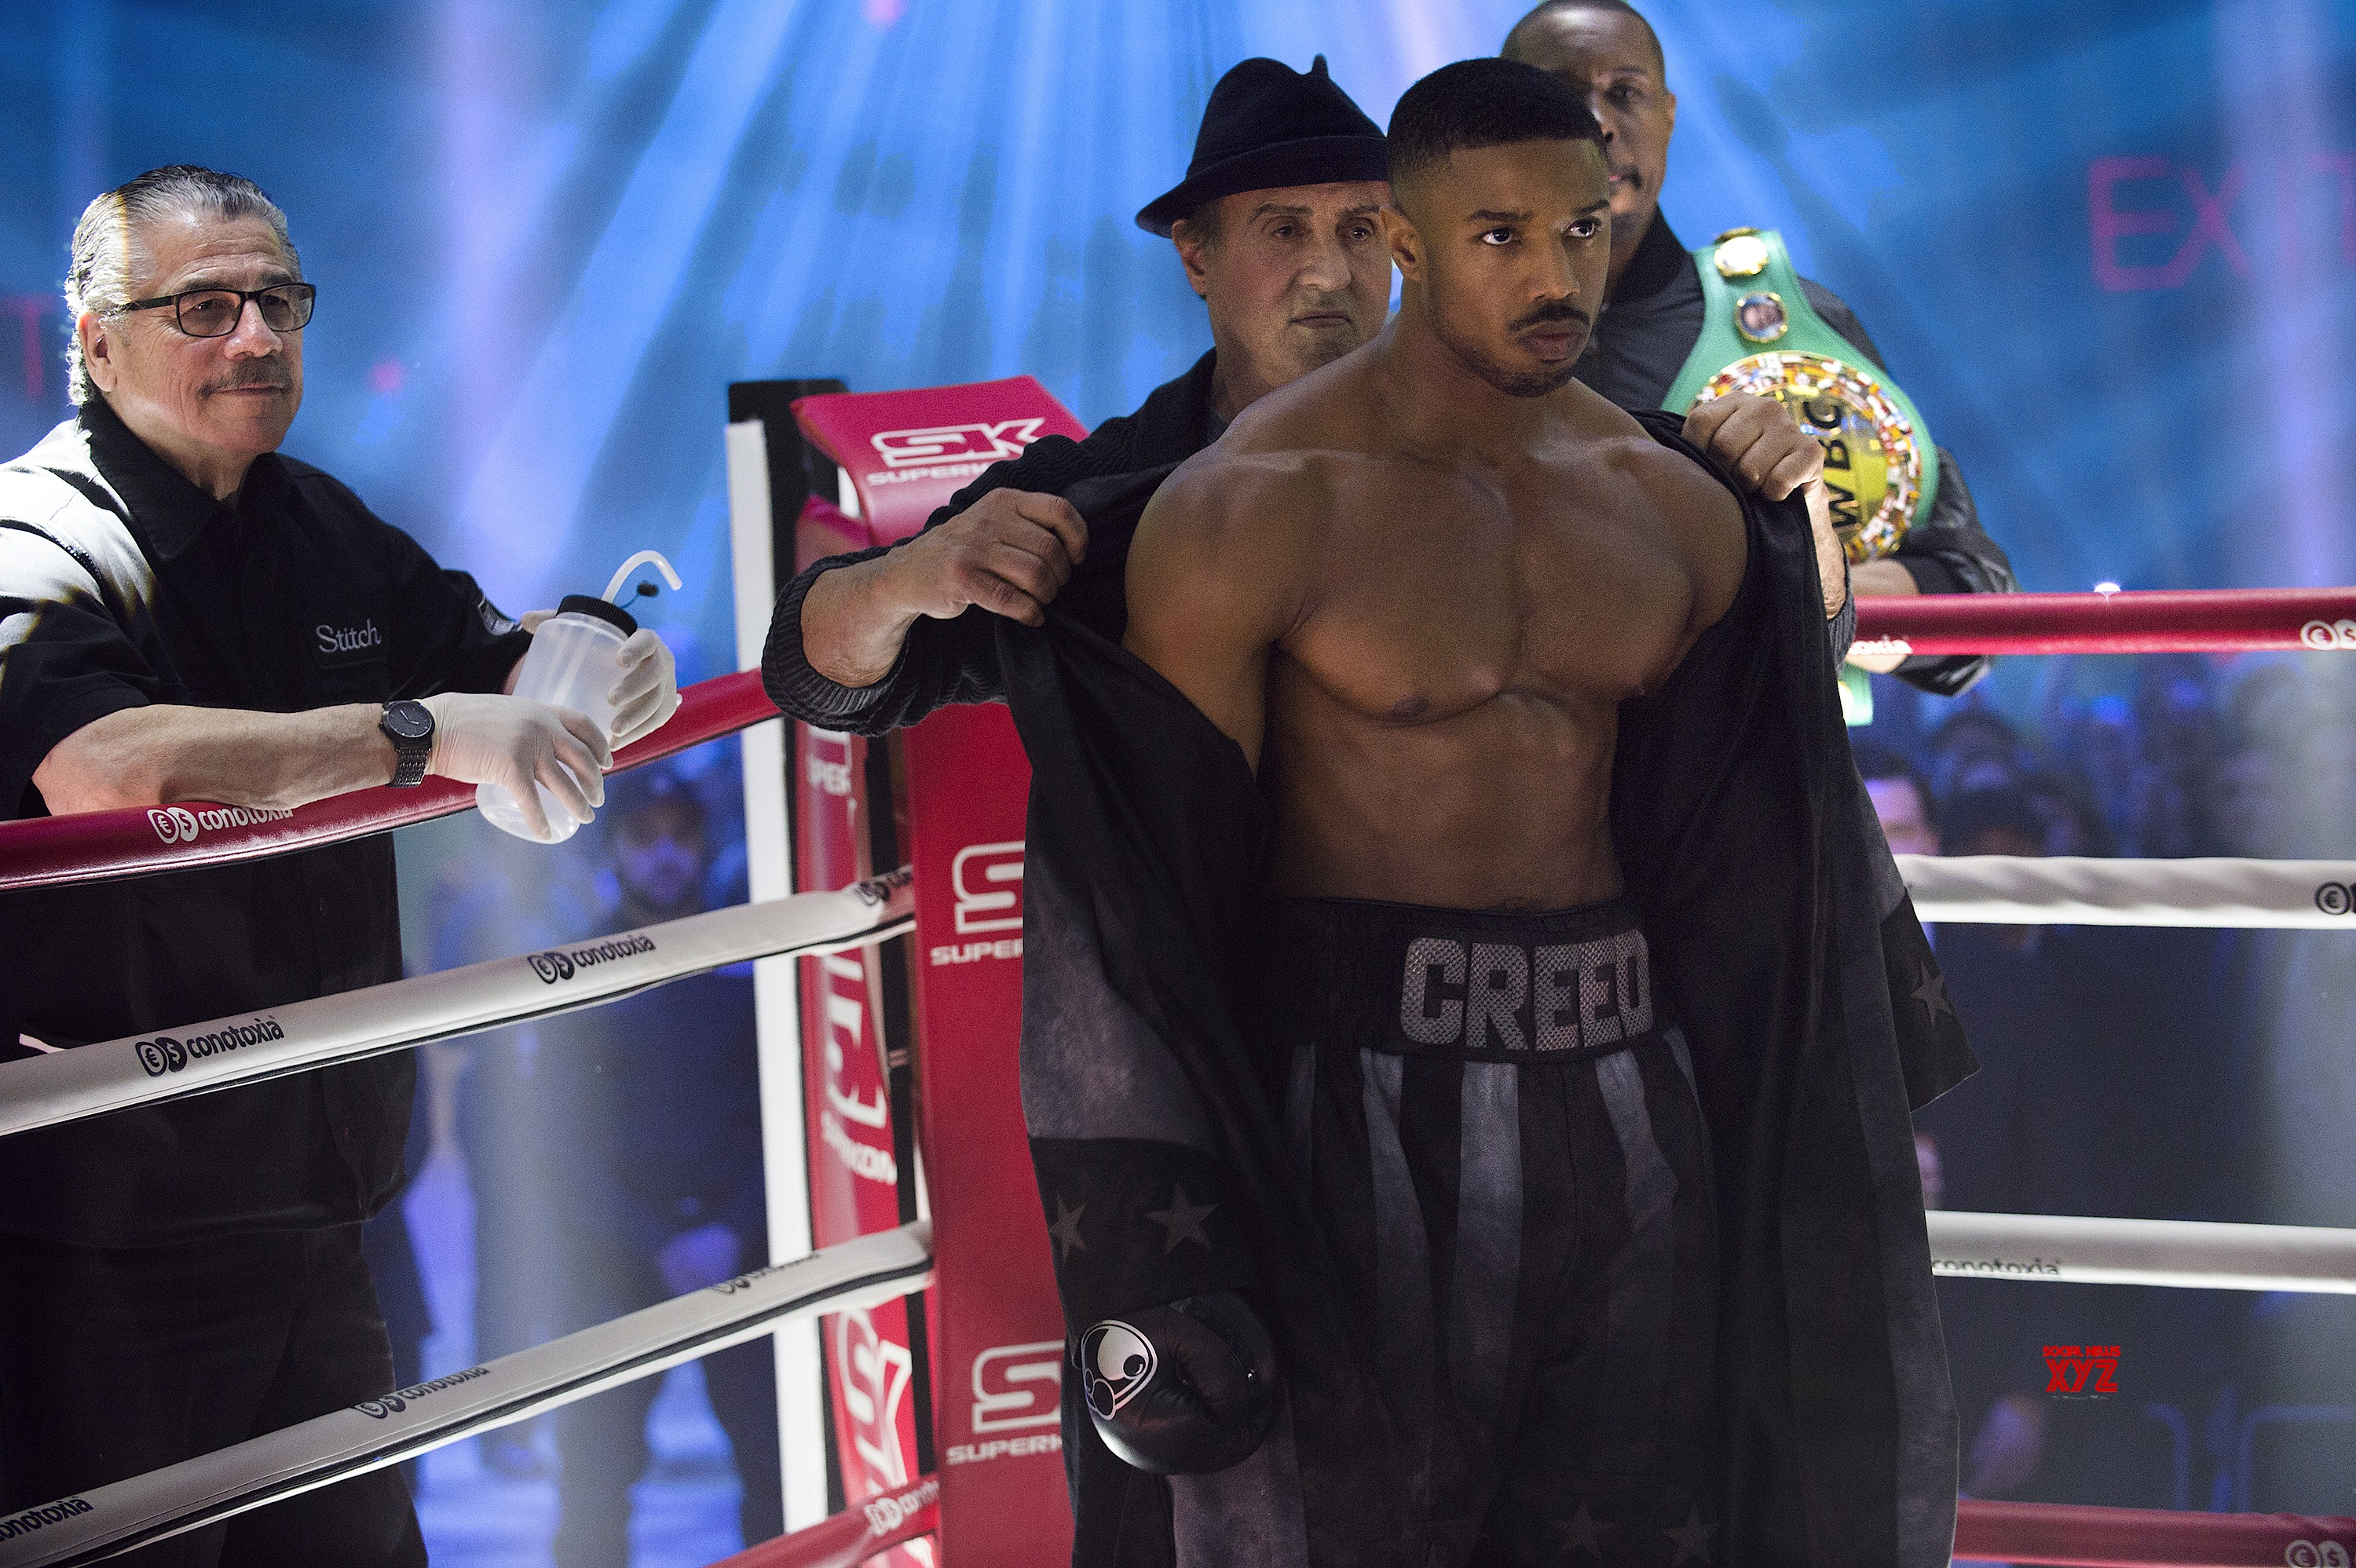 Creed 2 Hd Posted By Michelle Simpson